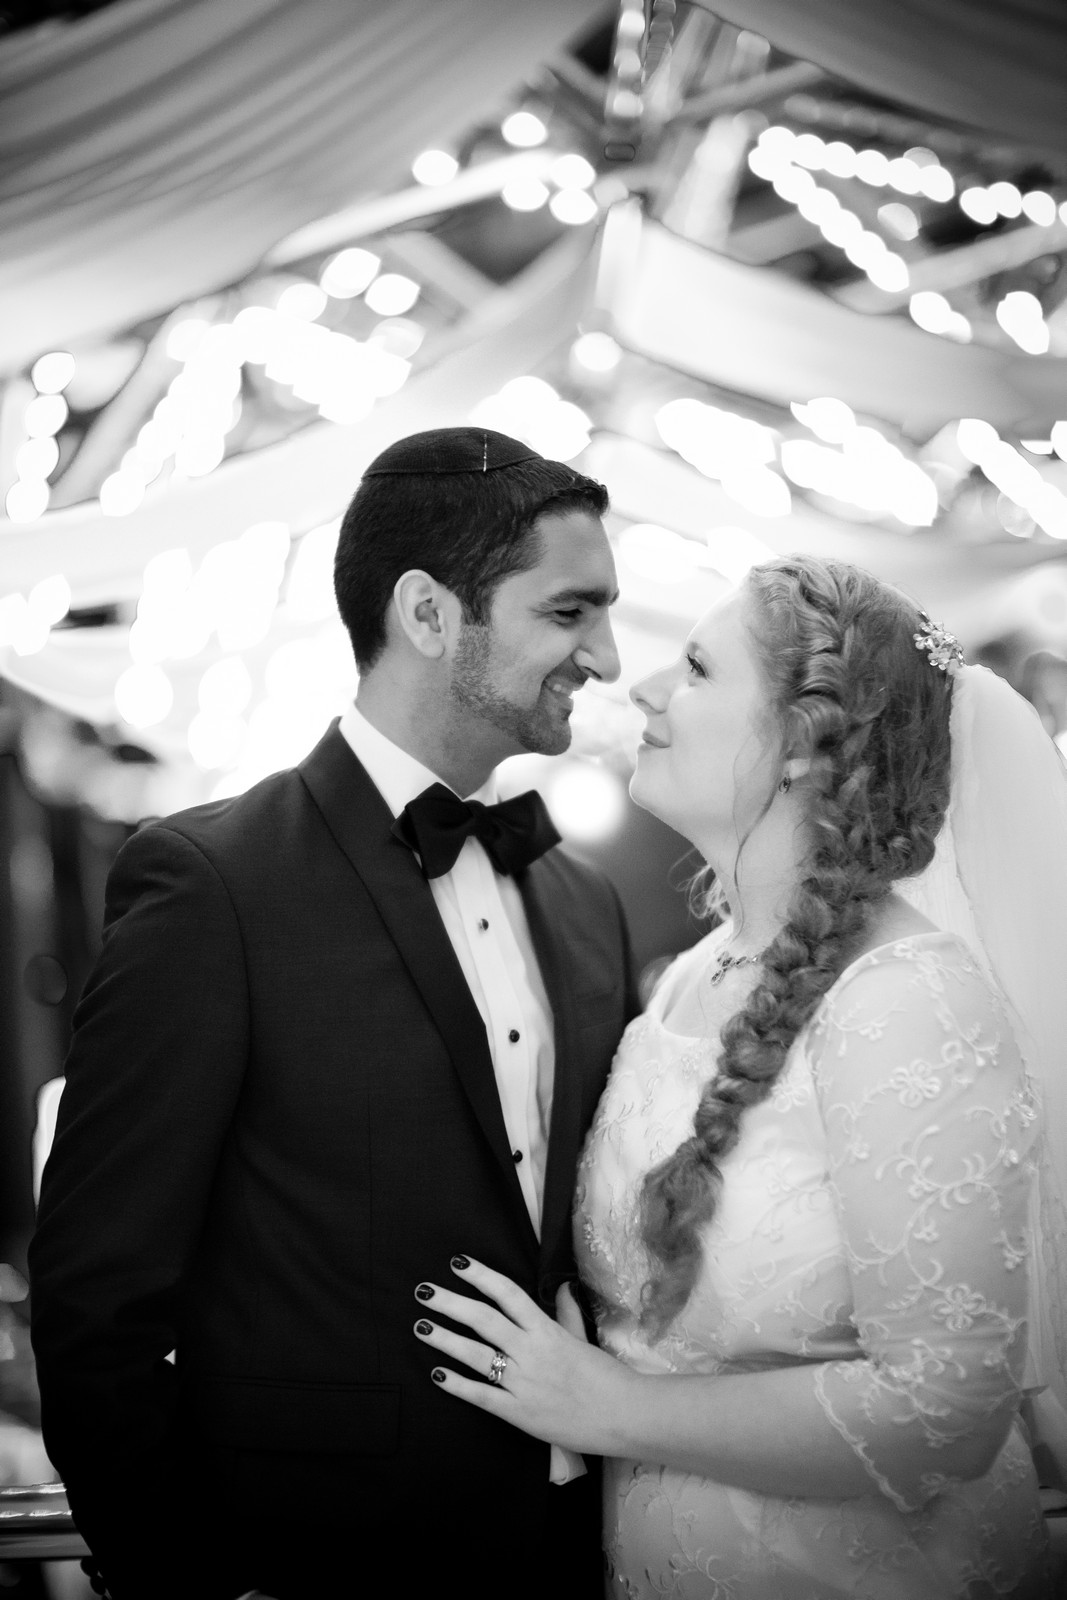 Sam and Yishai's Modern Orthodox Jewish Wedding at Crest Hollow Country Club, Woodbury NY, Photos by Chaim Schvarcz, Bride, Groom